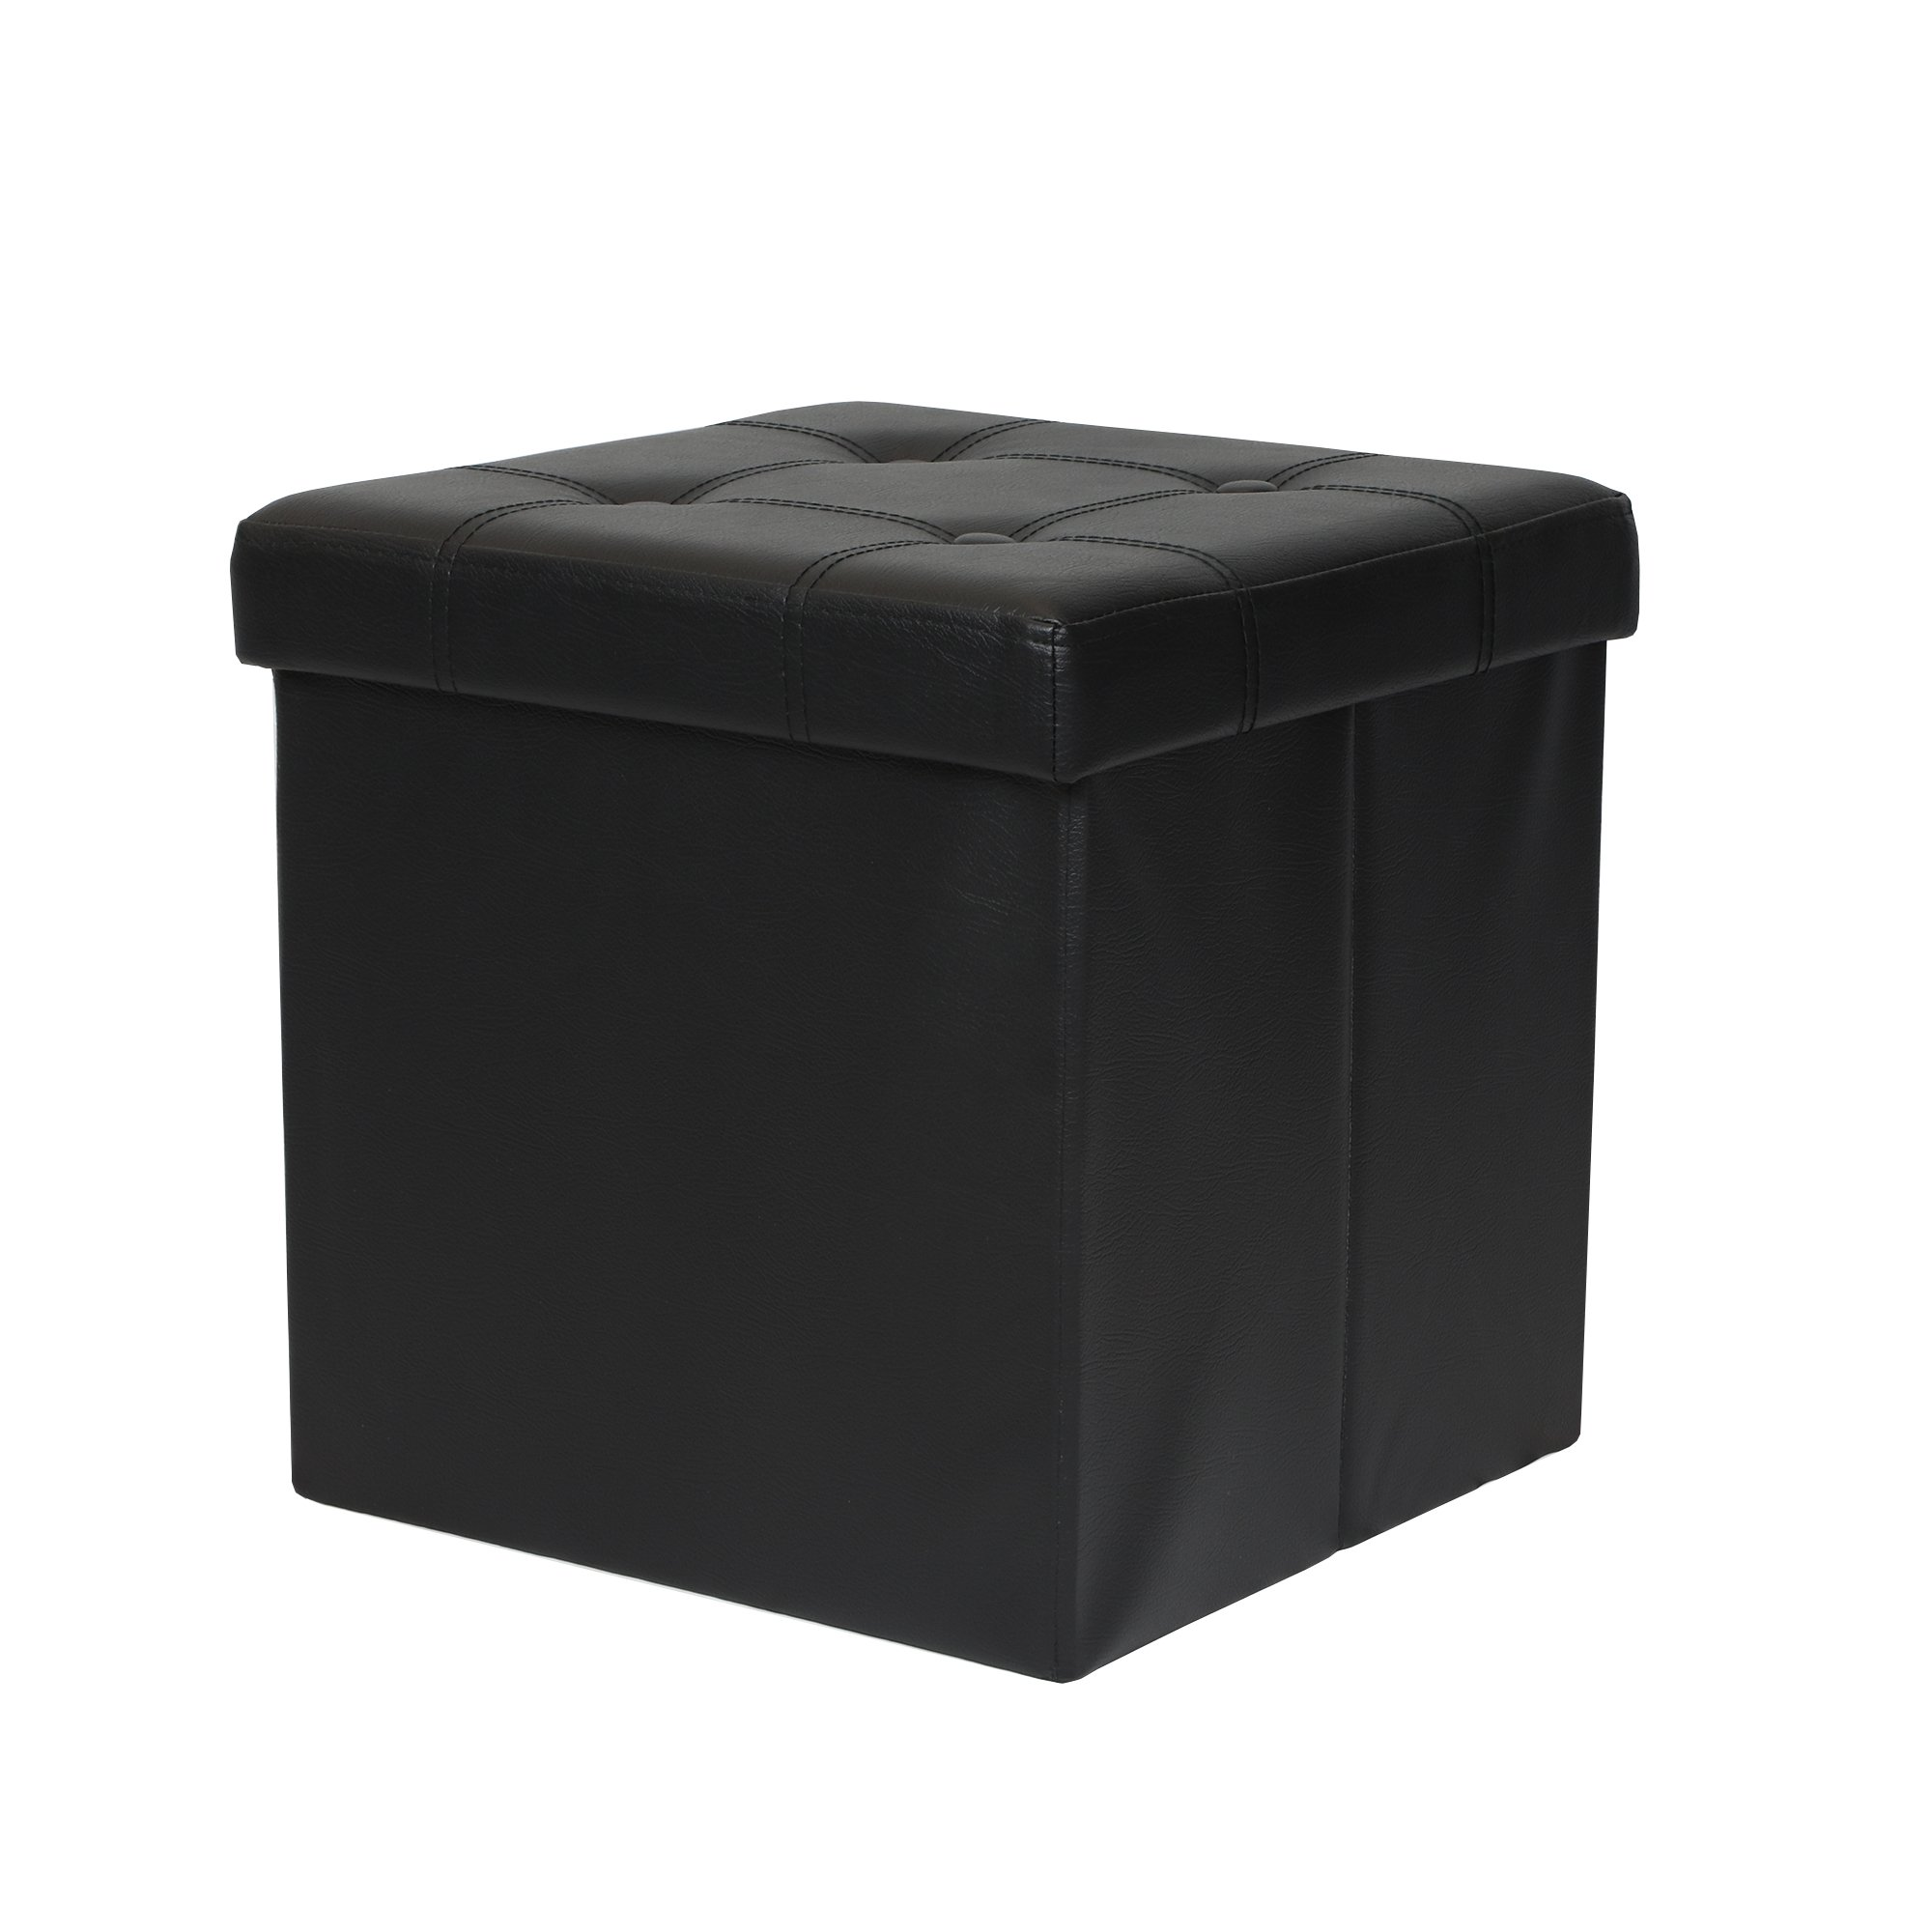 Otto & Ben 15'' Storage Ottoman - Folding Toy Box Chest with Memory Foam Seat, Tufted Faux Leather Small Ottomans Bench Foot Rest Stool, Black